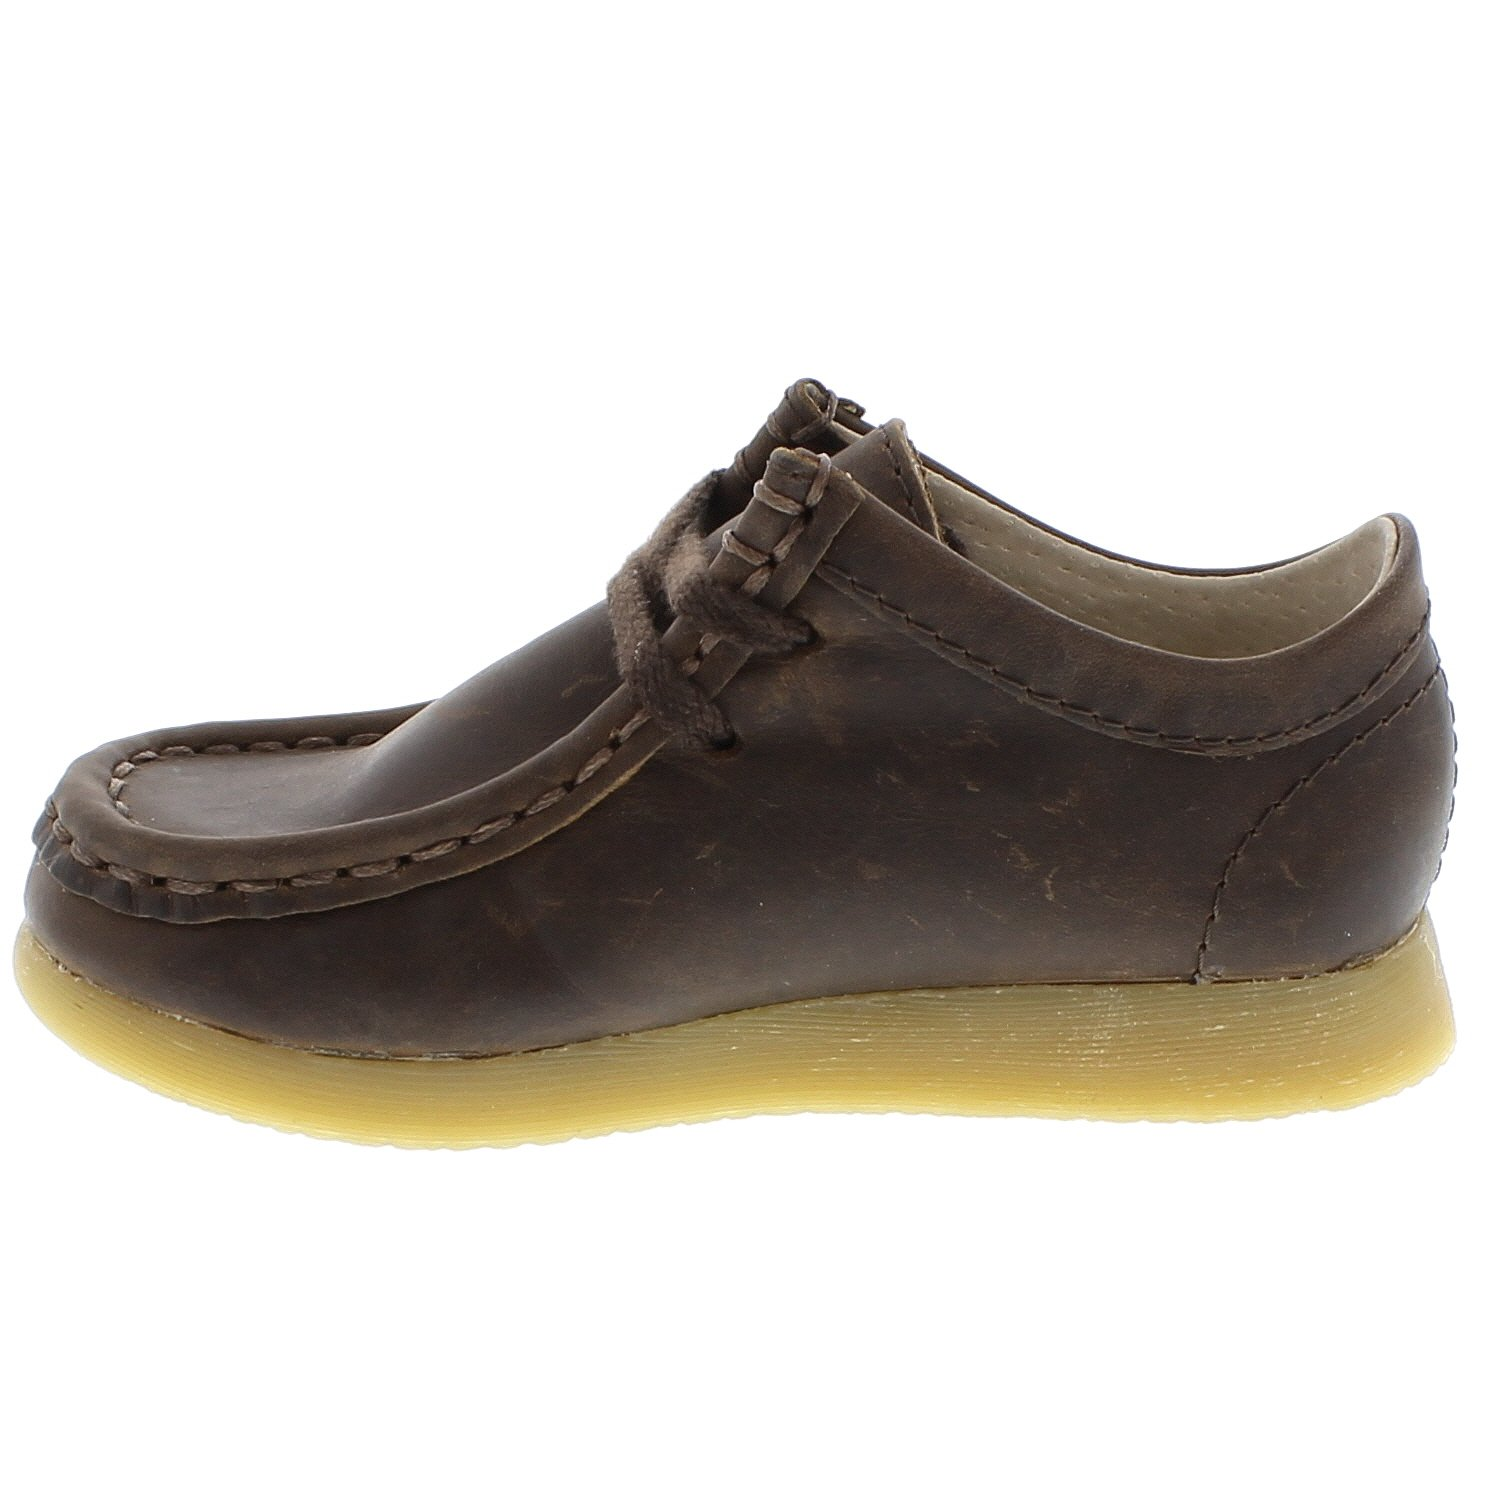 FOOTMATES Wally Low Wallabee Oxford Brown Oiled - 9125/12.5 Little Kid M/W by FOOTMATES (Image #6)